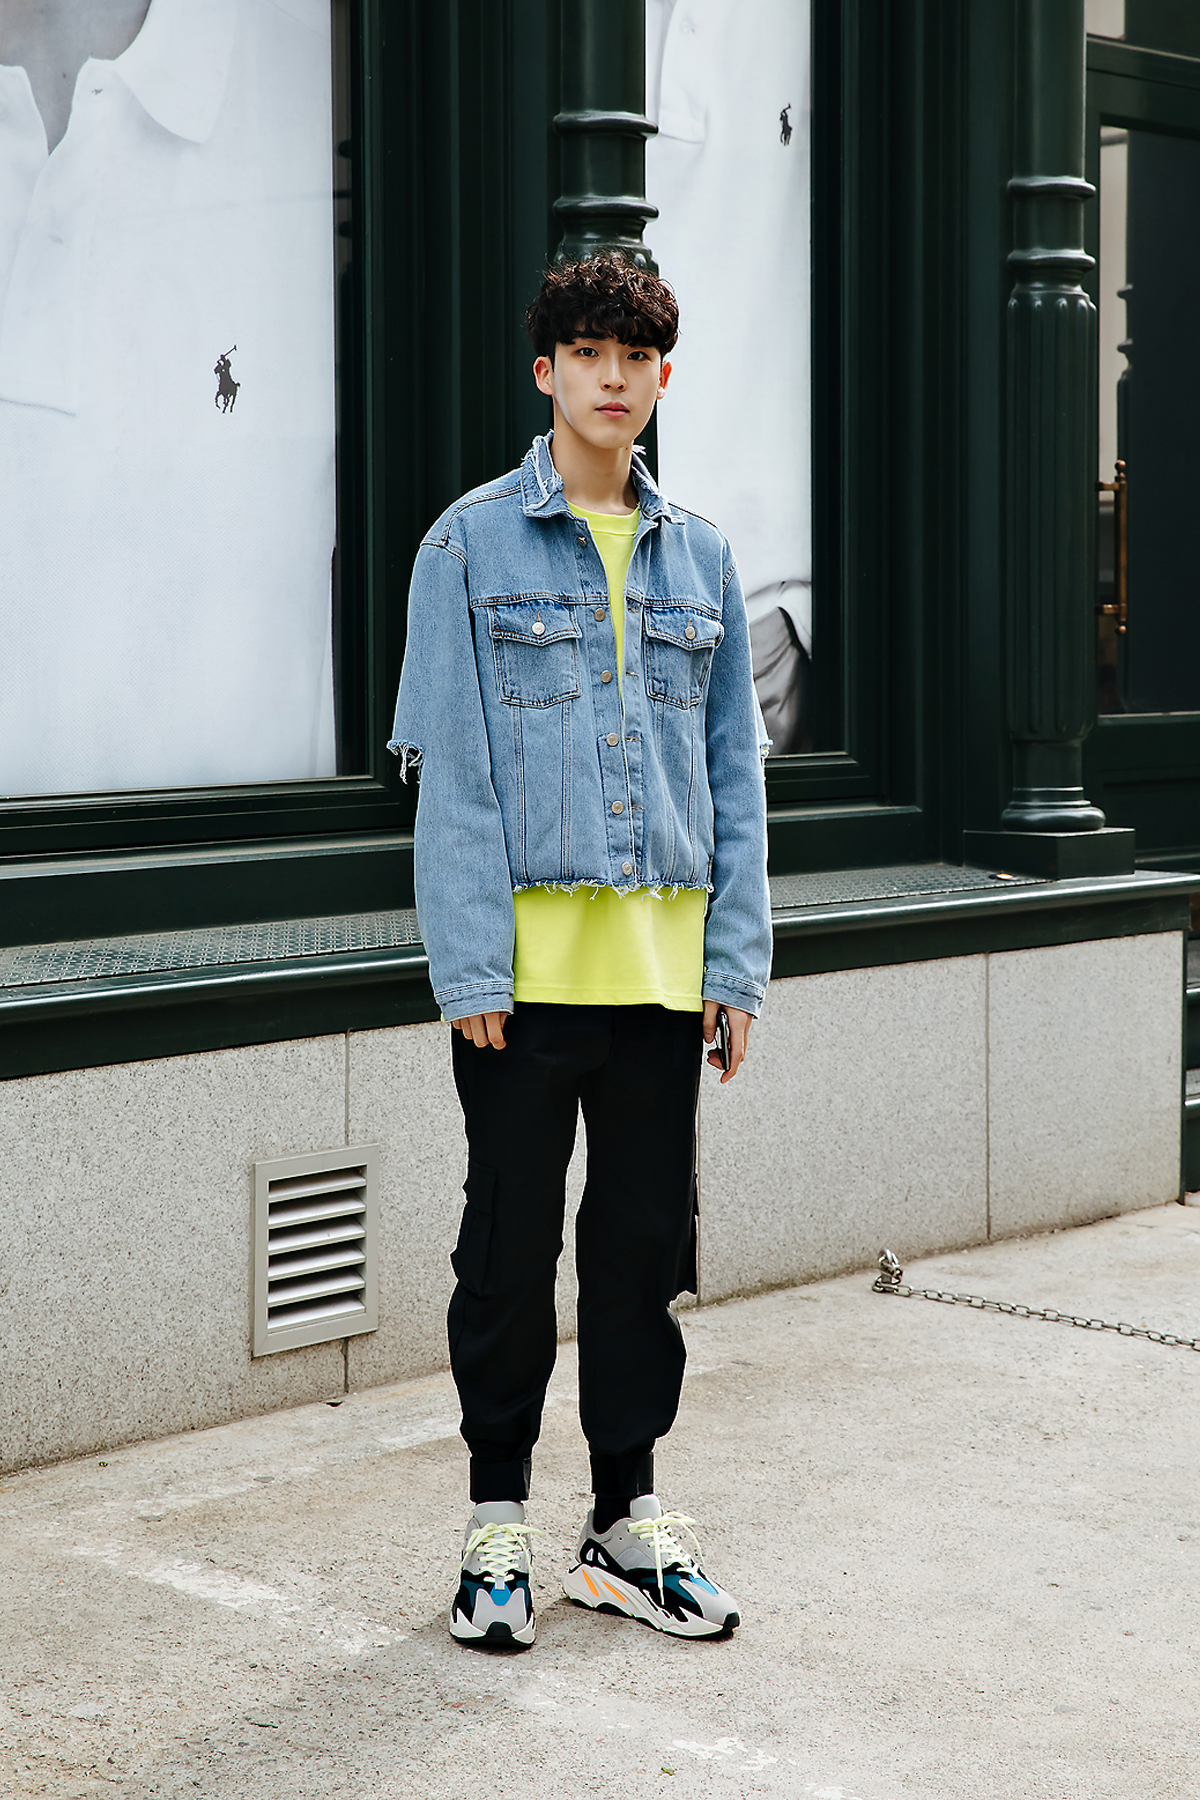 Yang Jaeyoung, Street style men spring 2018 in seoul